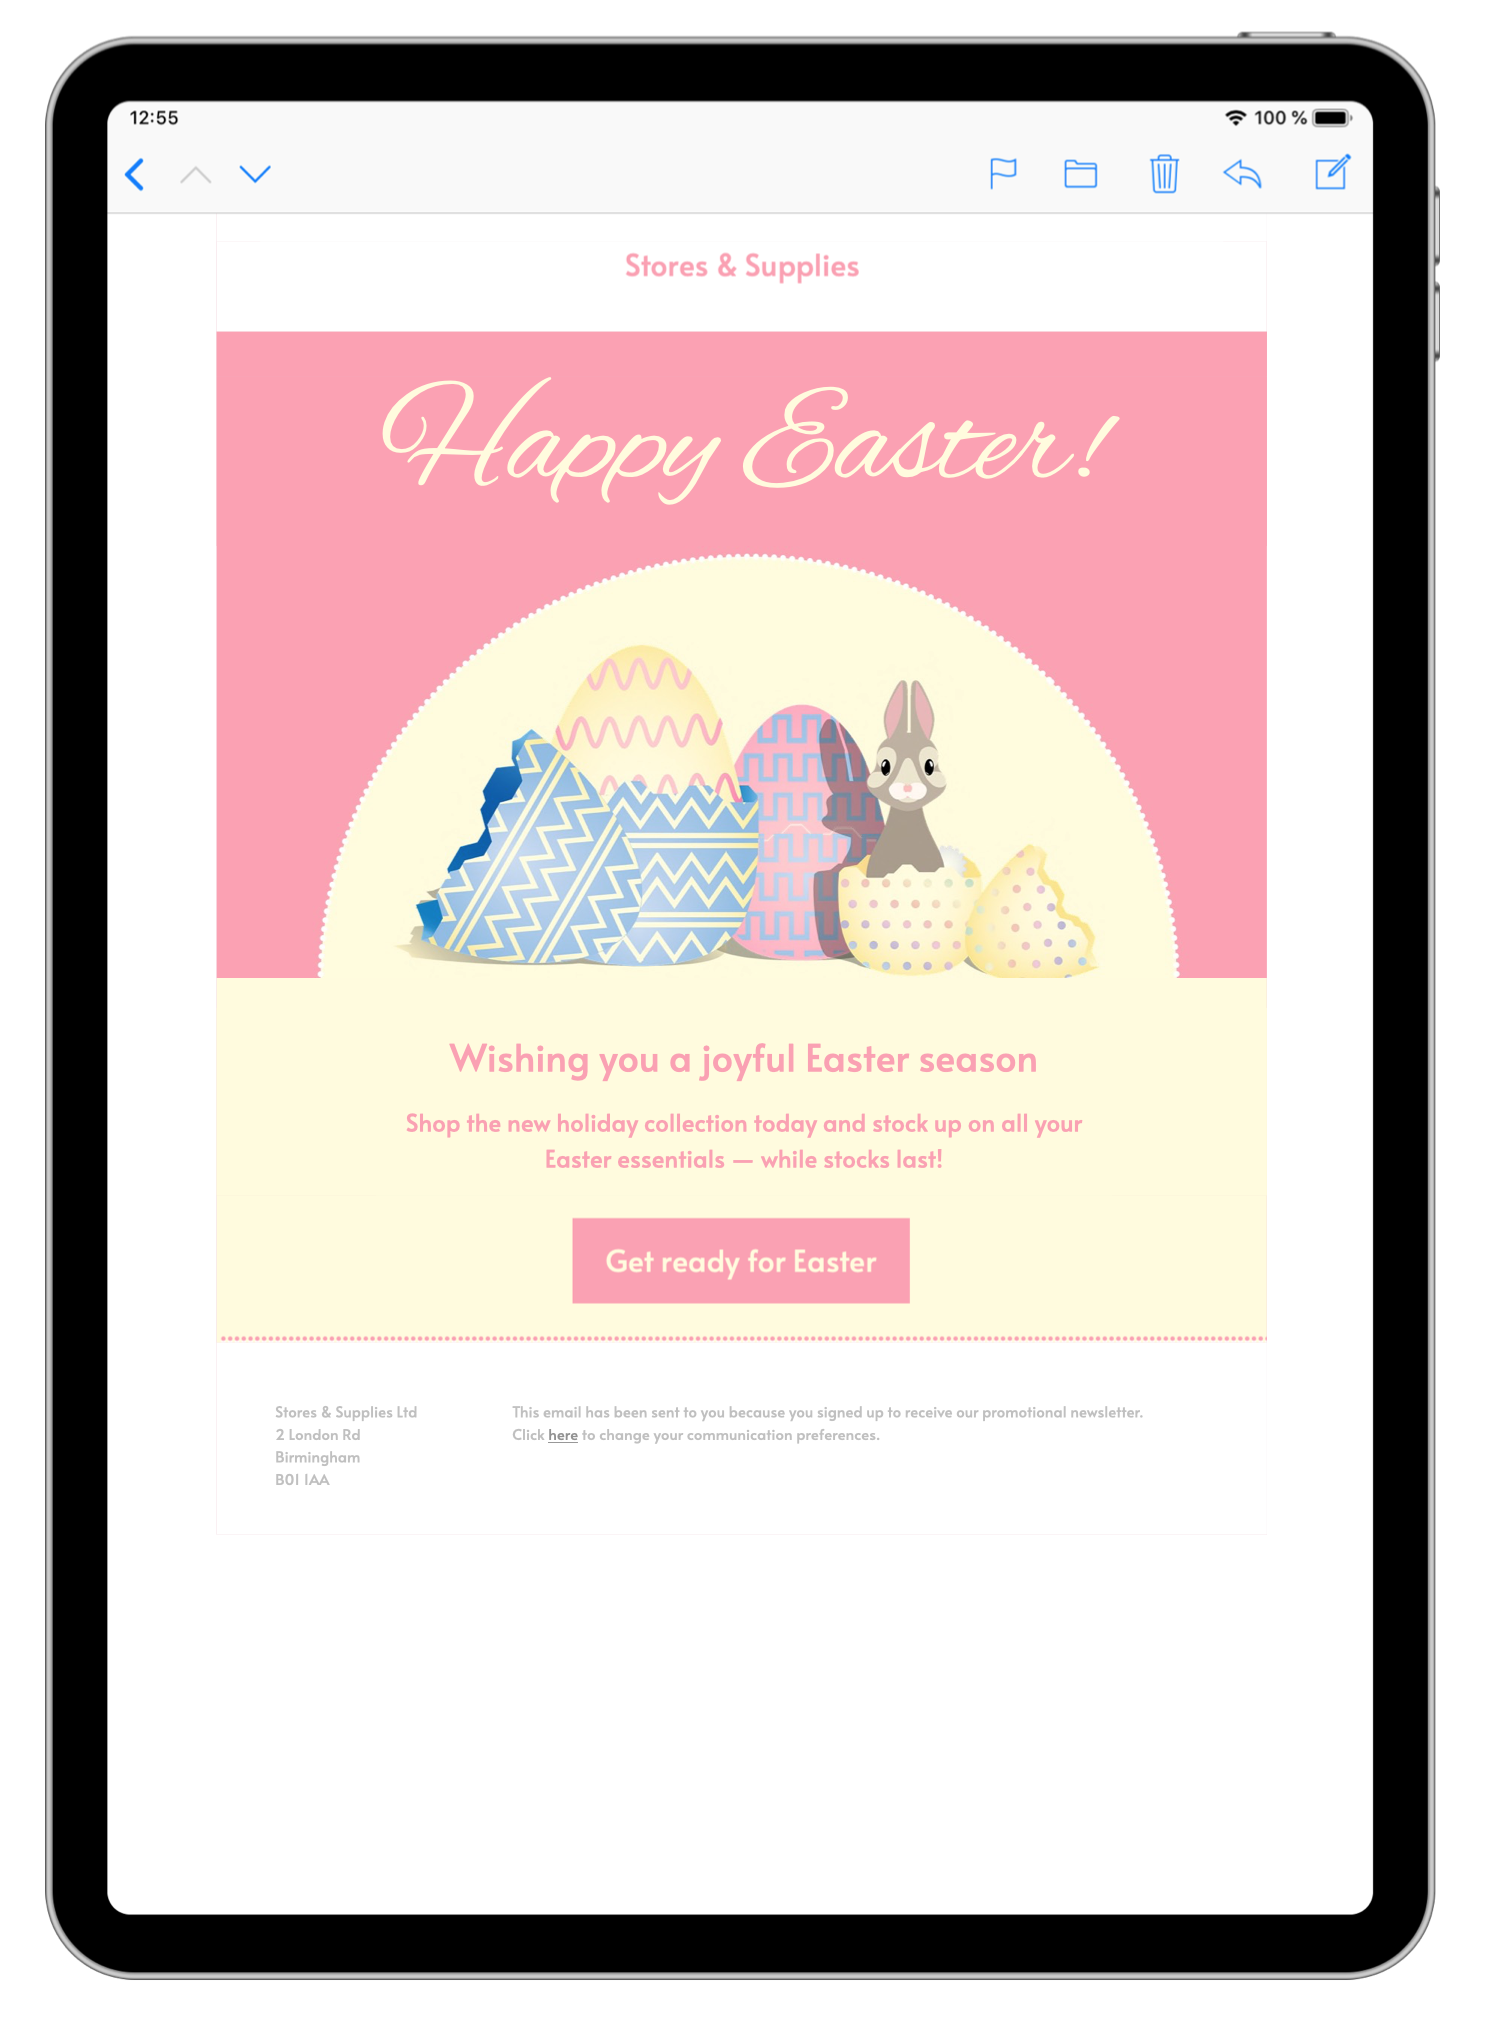 html email template for easter email campaigns